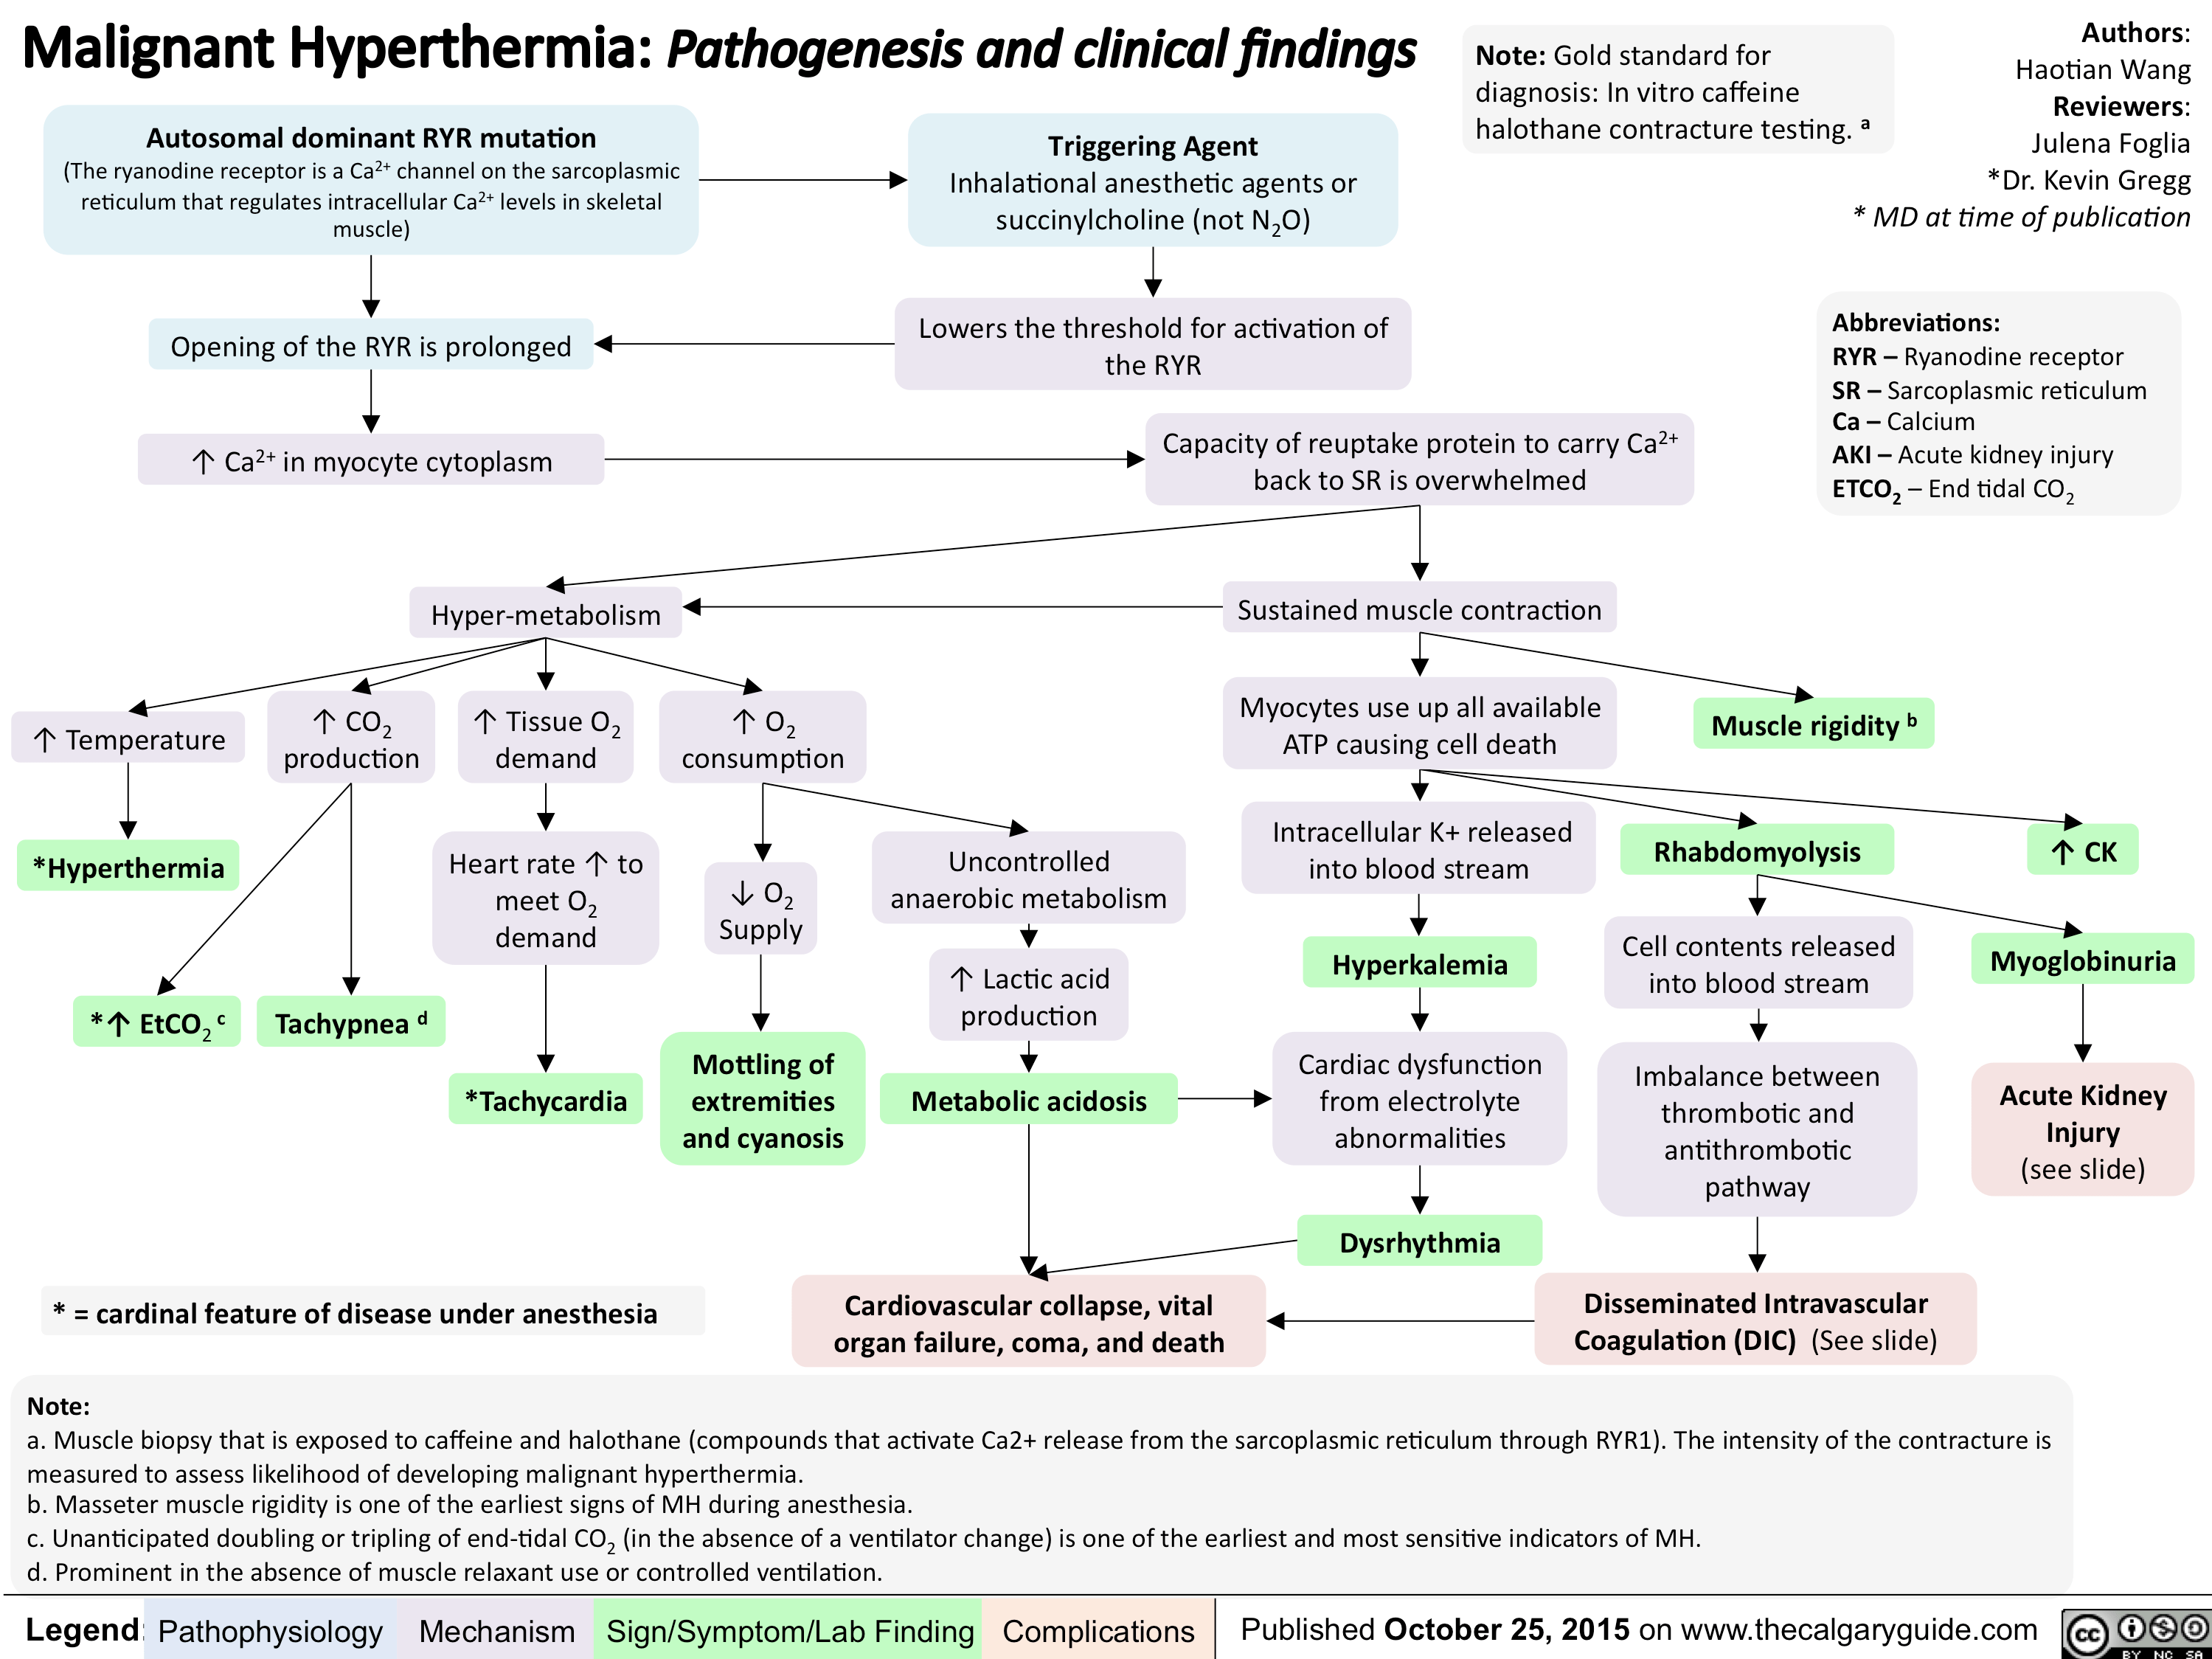 Malignant Hyperthermia Pathogenesis And Clinical Findings